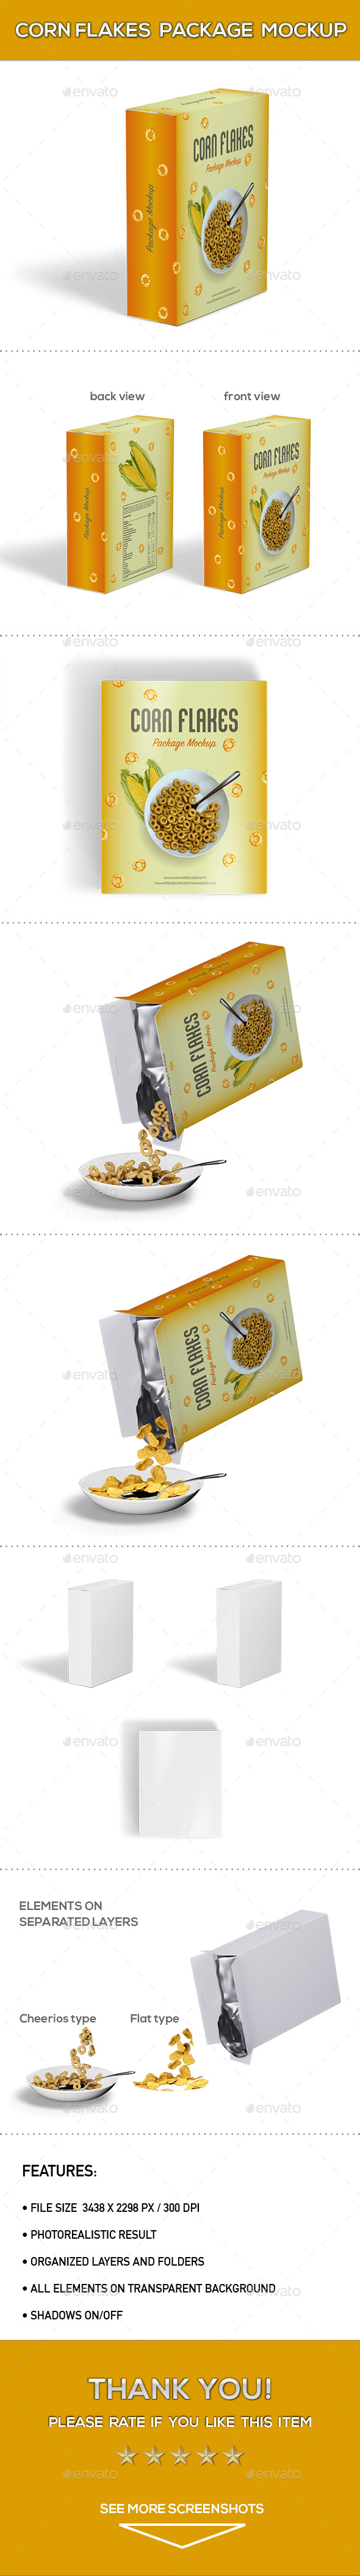 Corn Flakes Package Mock-Up - Product Mock-Ups Graphics